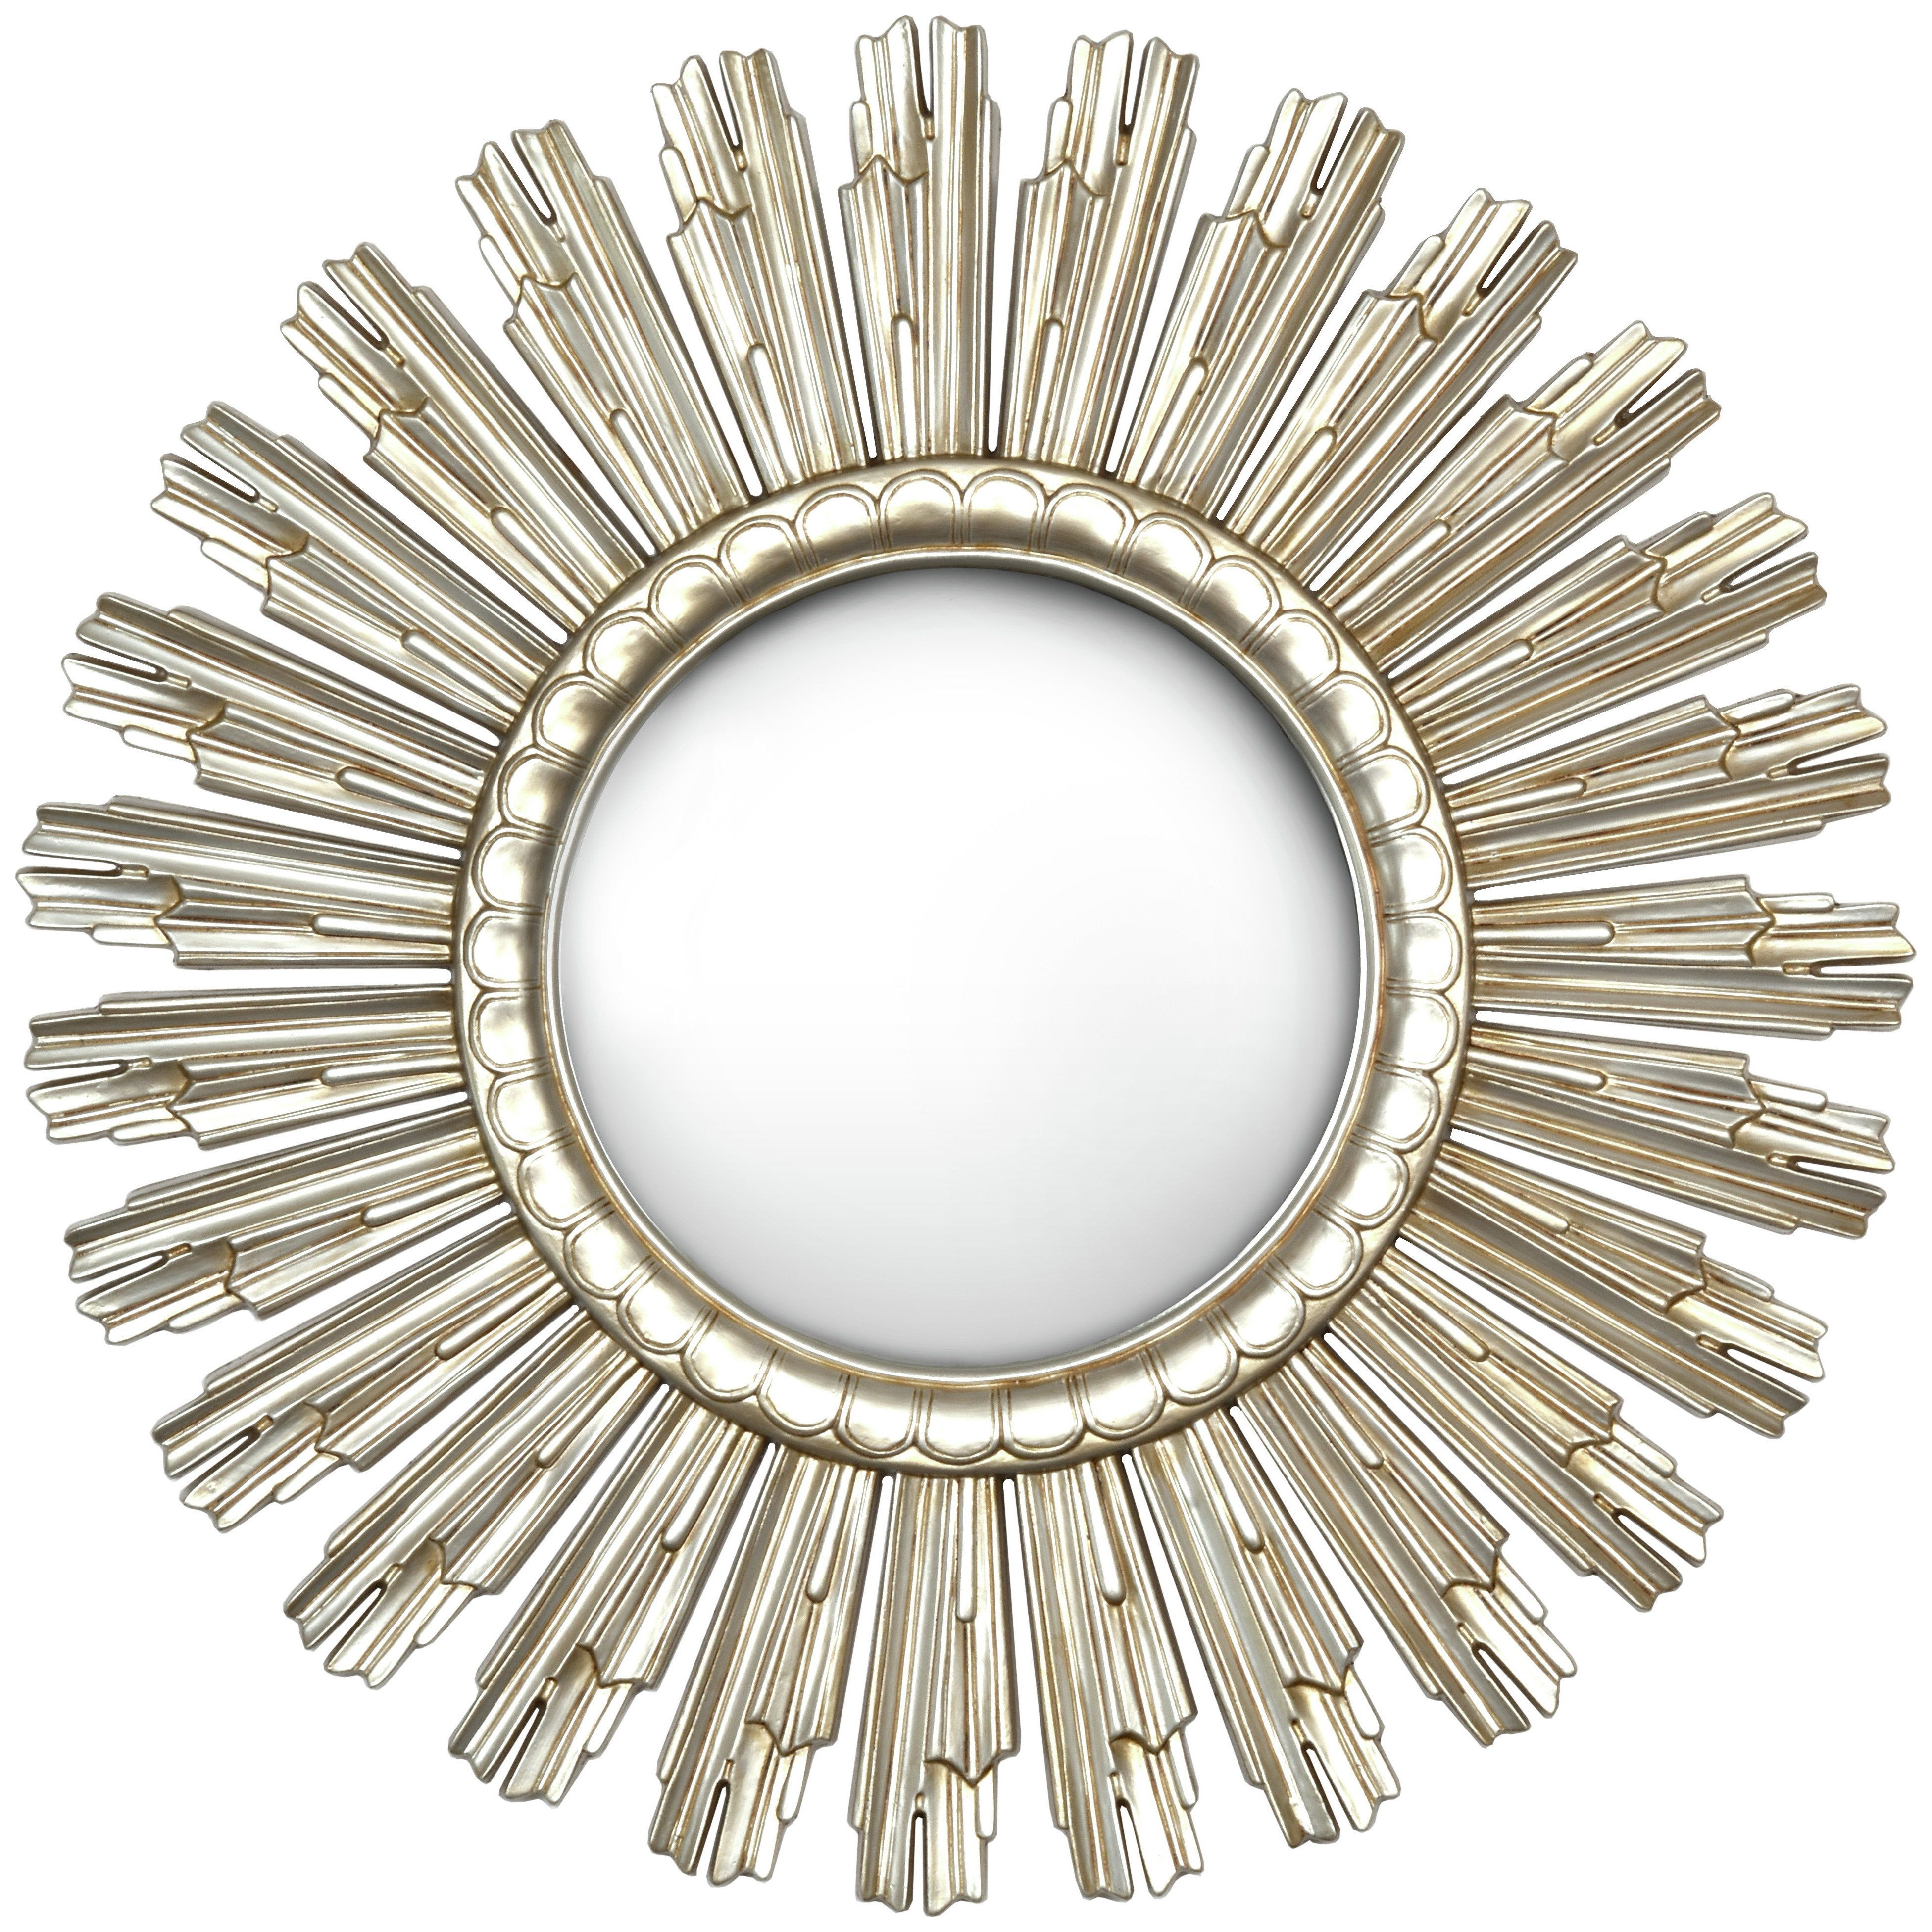 Sundial Mirror - Champagne Gold.